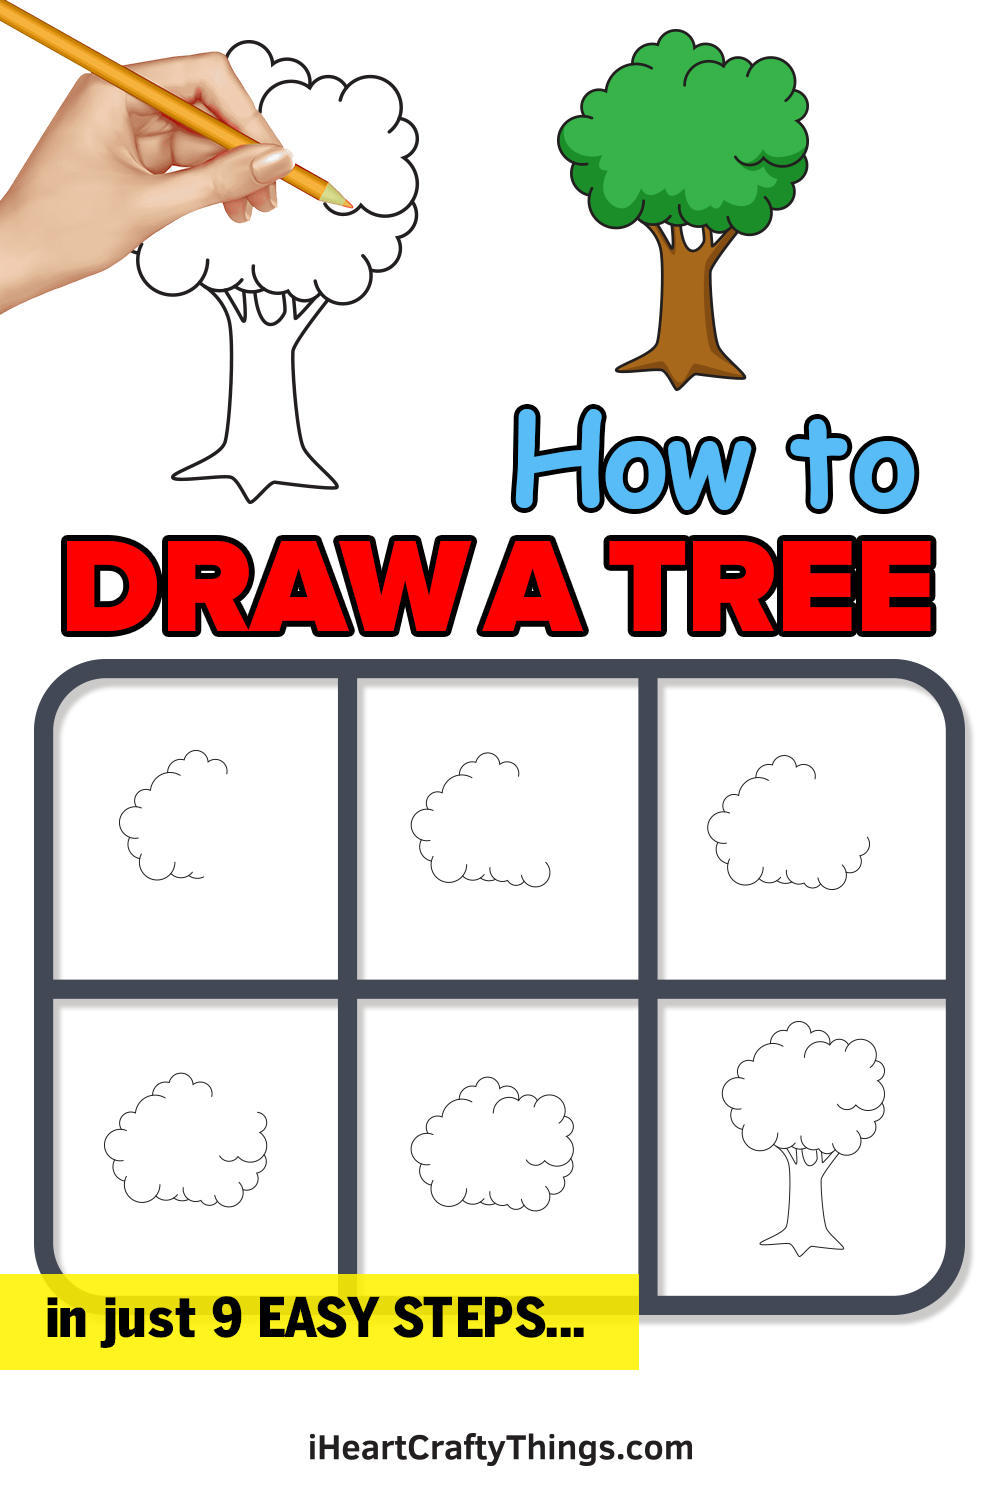 how to draw a tree in 9 easy steps